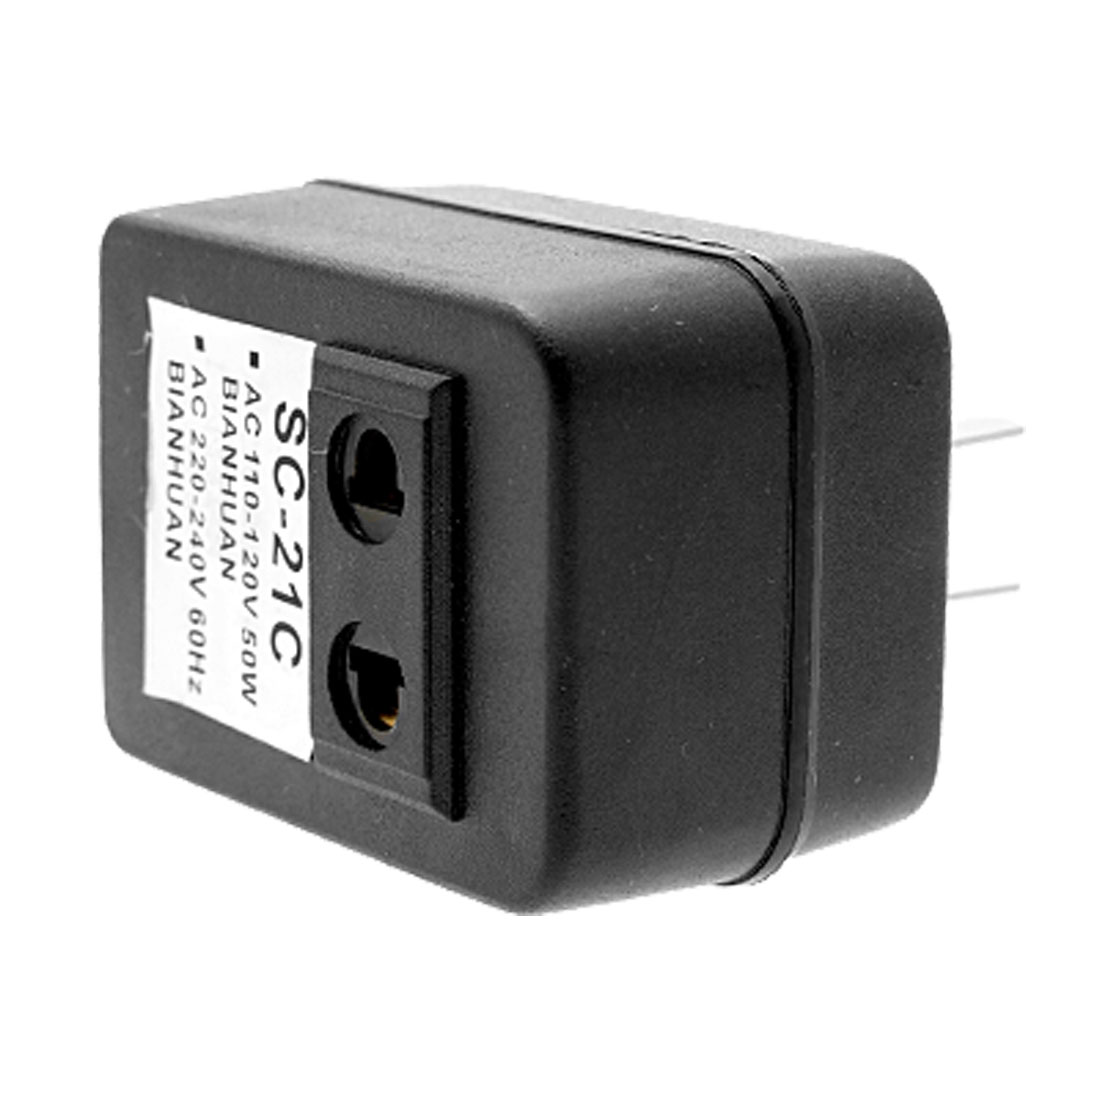 50 Watts US Plug AC Power Voltage Converter 110V to 220V Wall Adapter